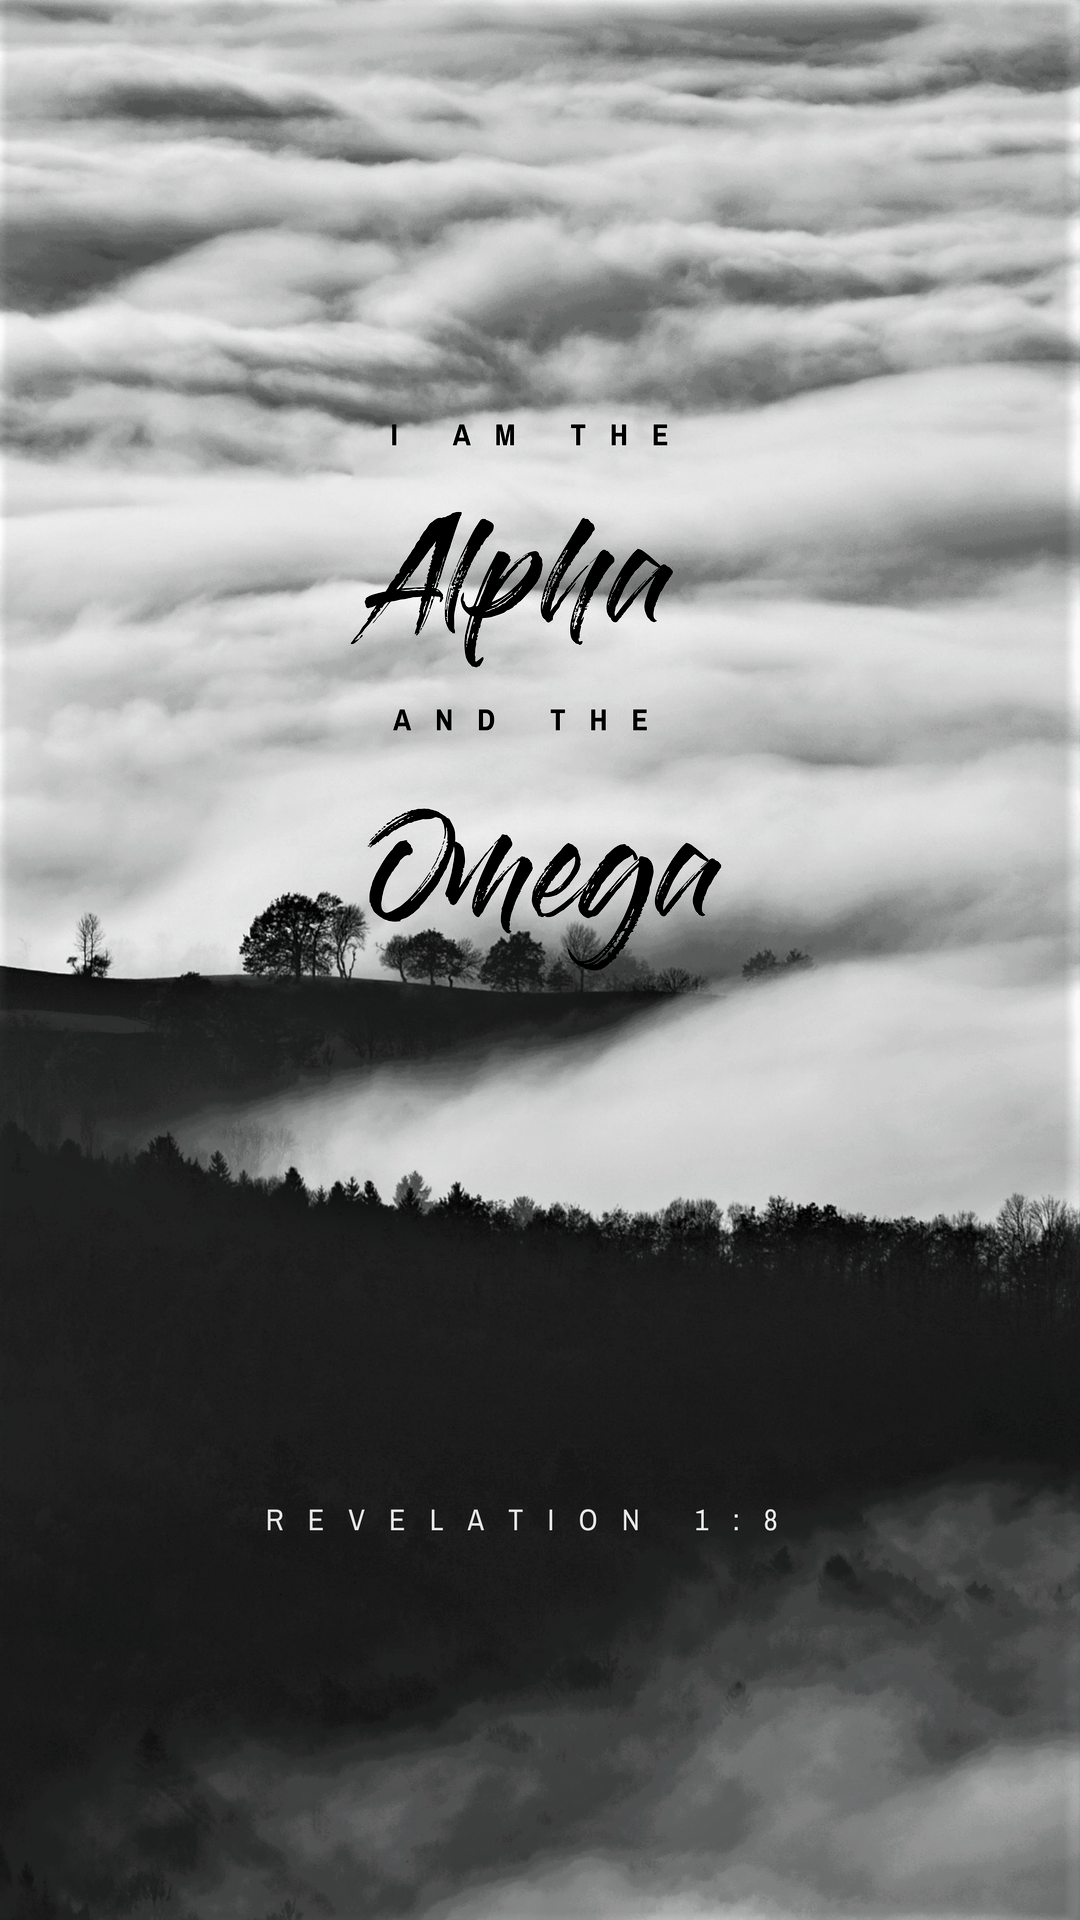 """Revelation 1:8  """"I am the Alpha and the Omega,"""" says the Lord God, """"who is, and who was, and who is to come, the Almighty."""""""